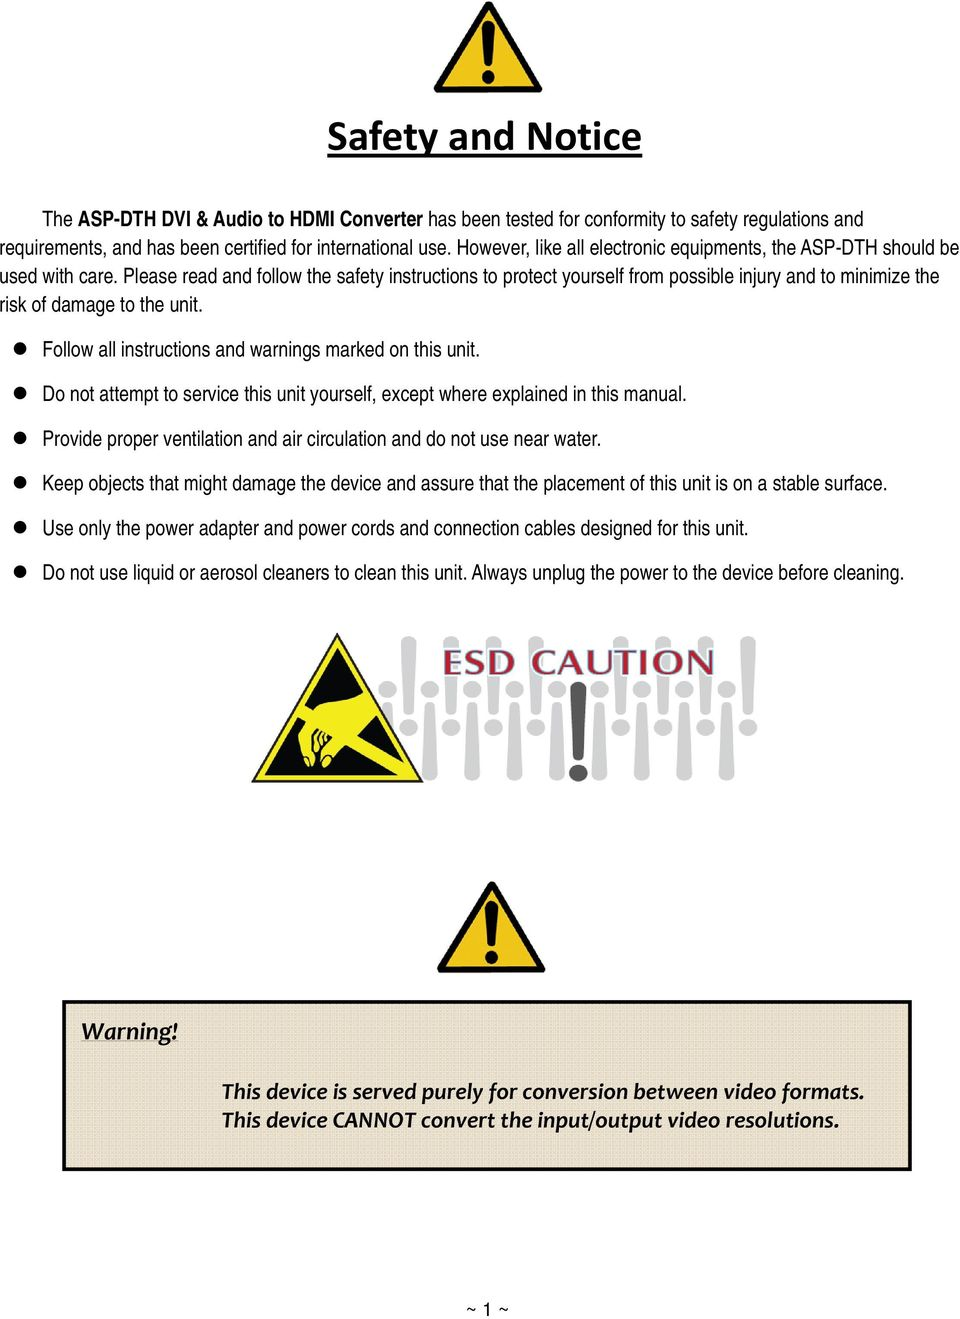 Please read and follow the safety instructions to protect yourself from possible injury and to minimize the risk of damage to the unit. Follow all instructions and warnings marked on this unit.